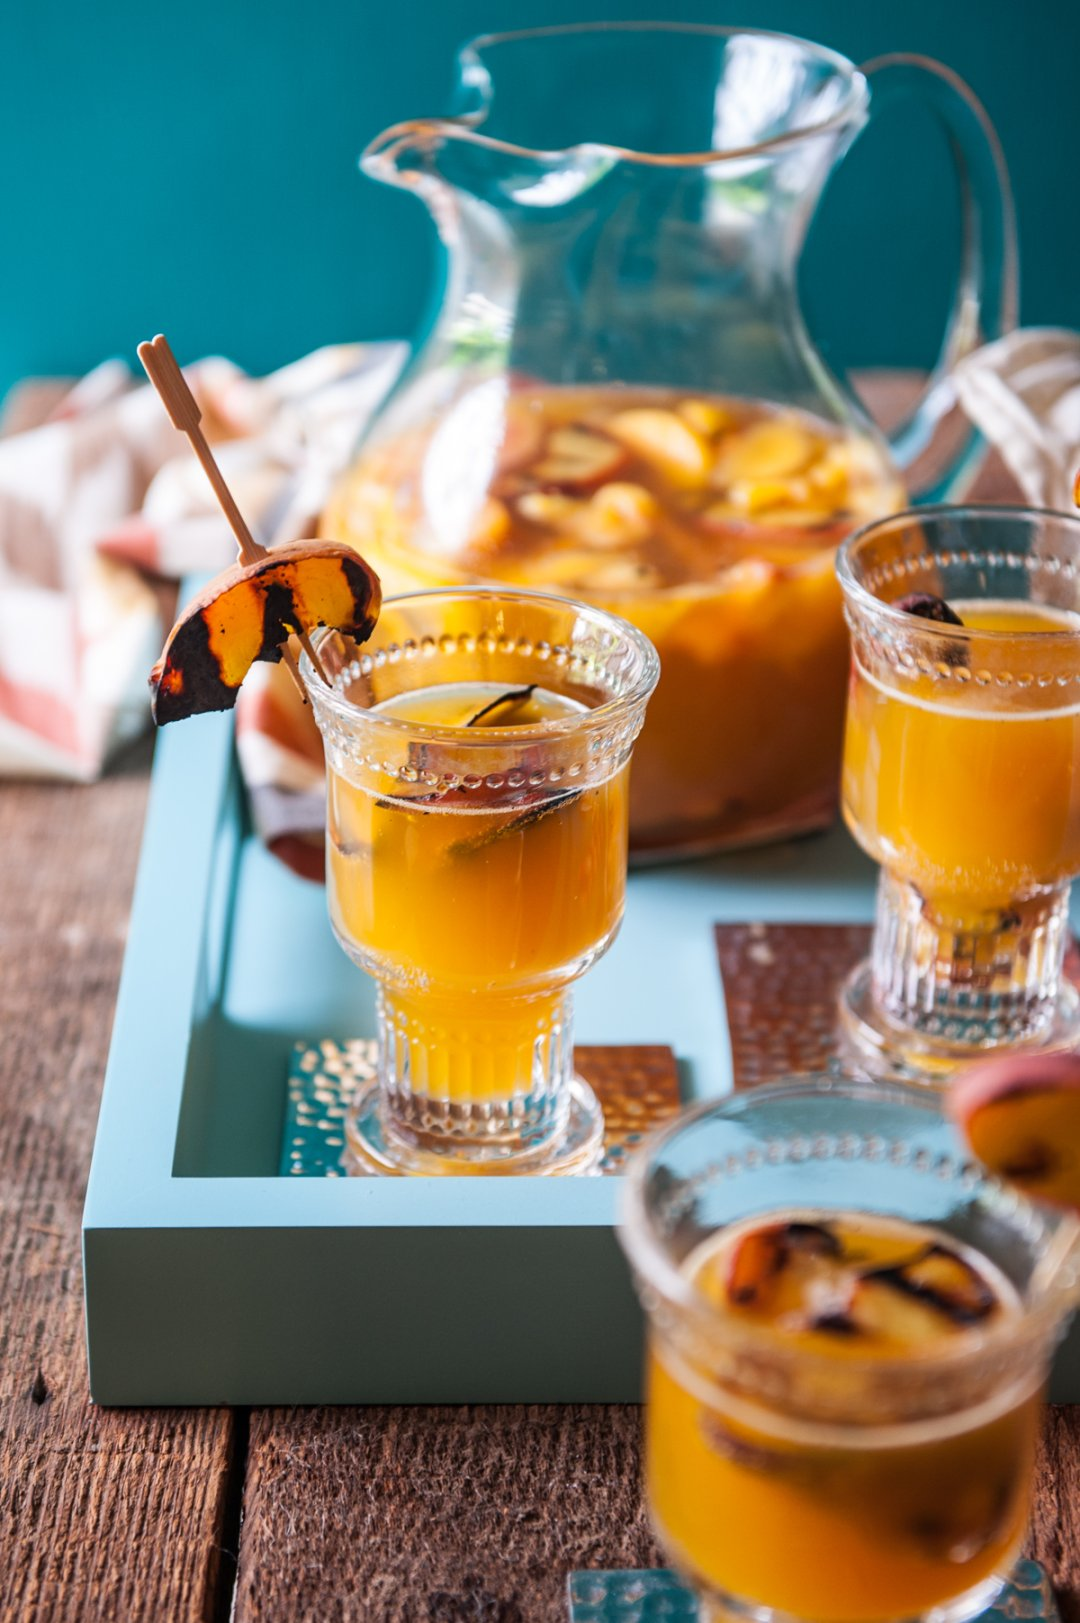 Fruity sangria with grilled peach skewers on blue serving tray